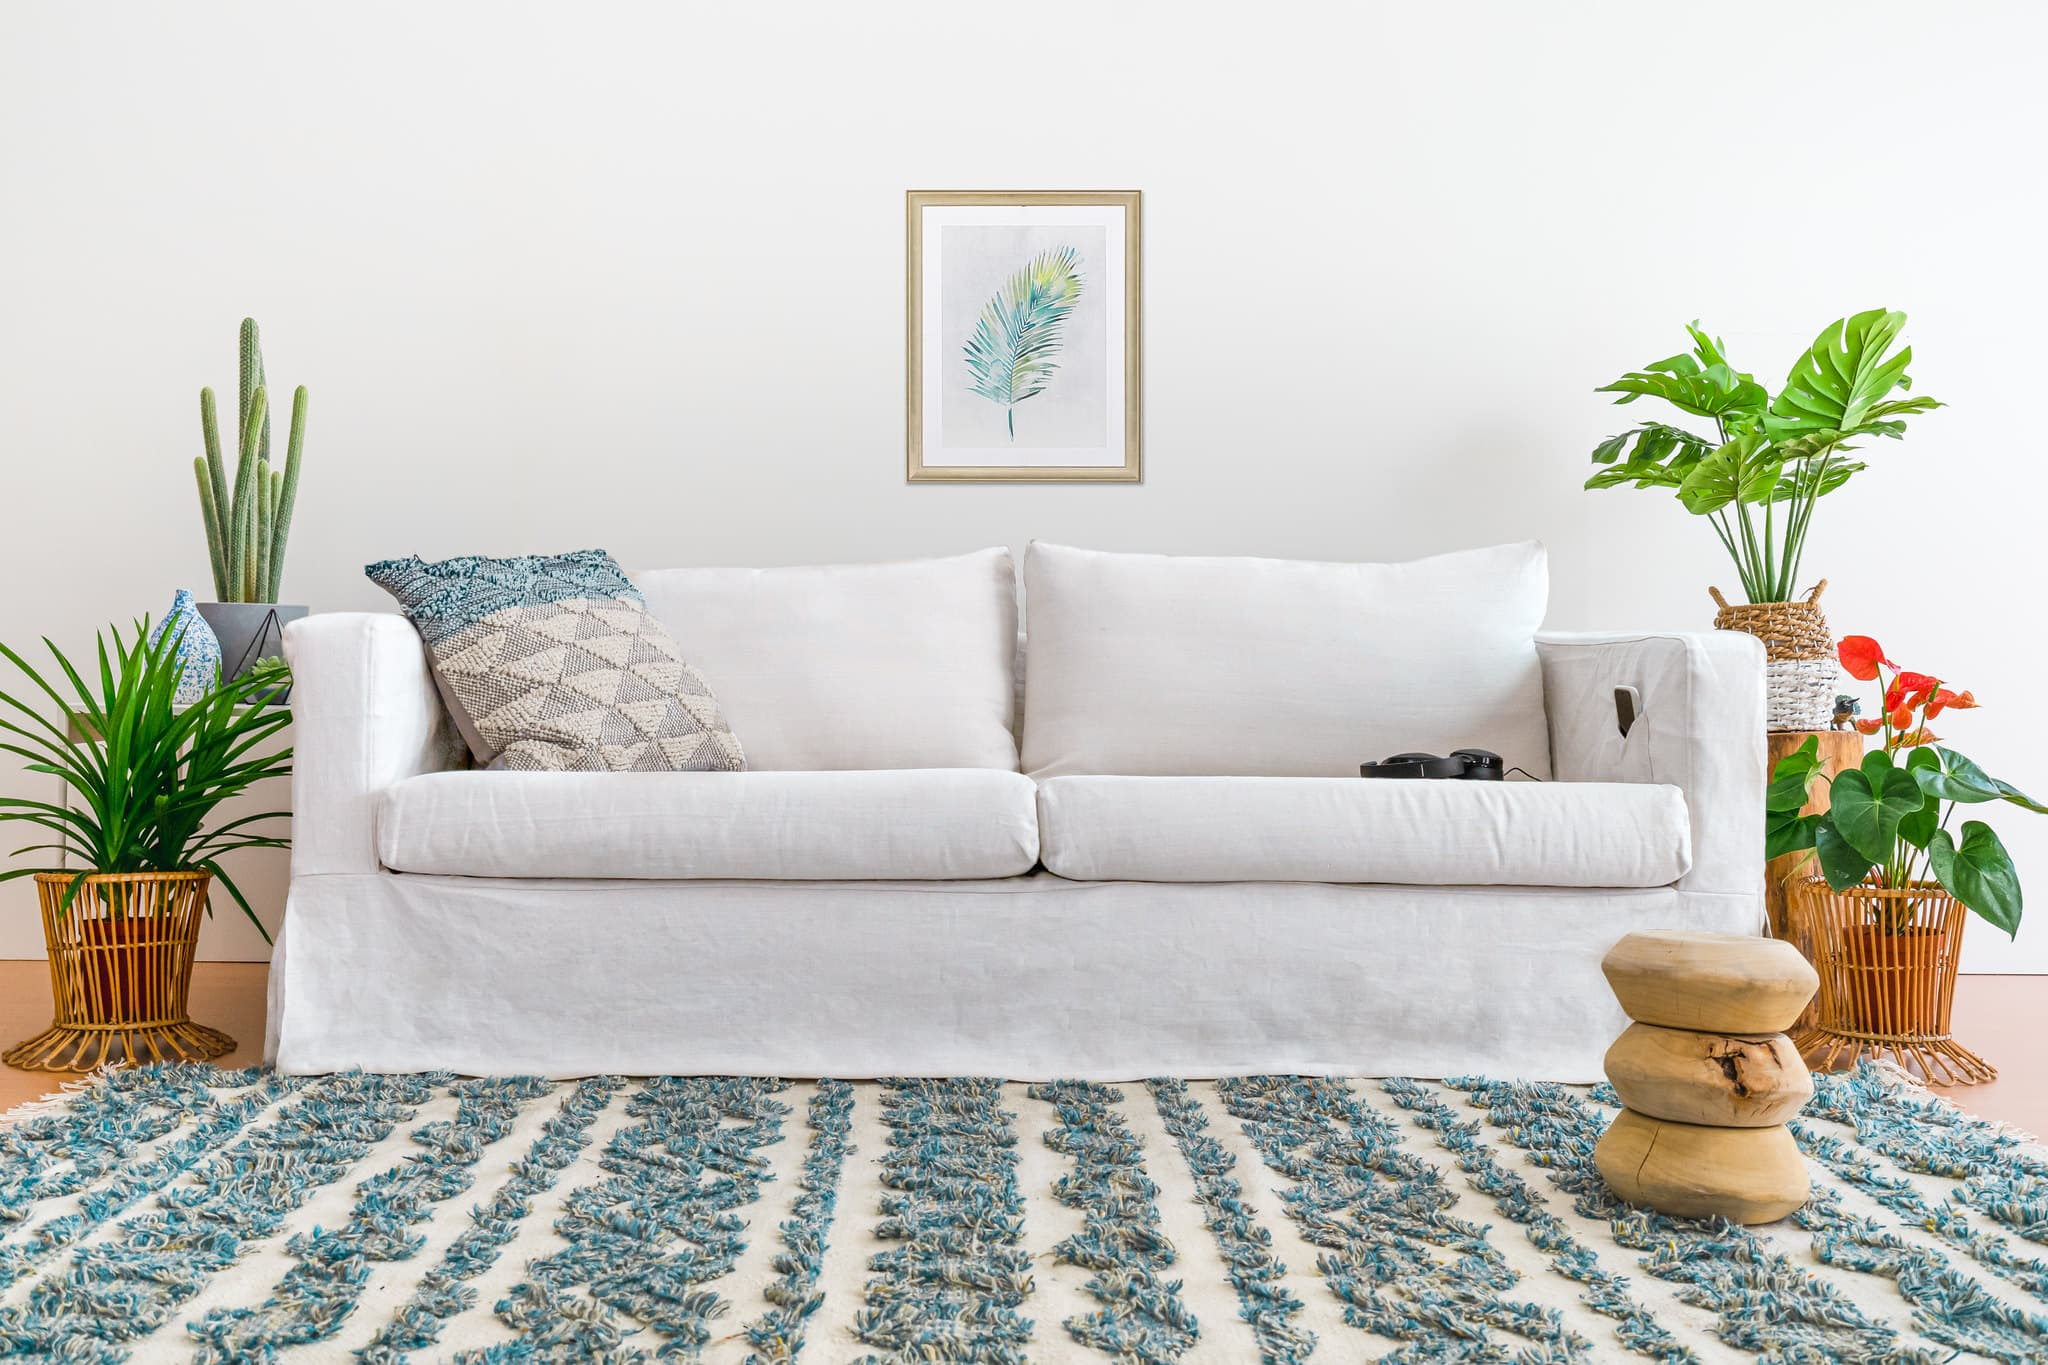 Stockholm 2017 Sofa Covers in Madison Ash cotton fabric